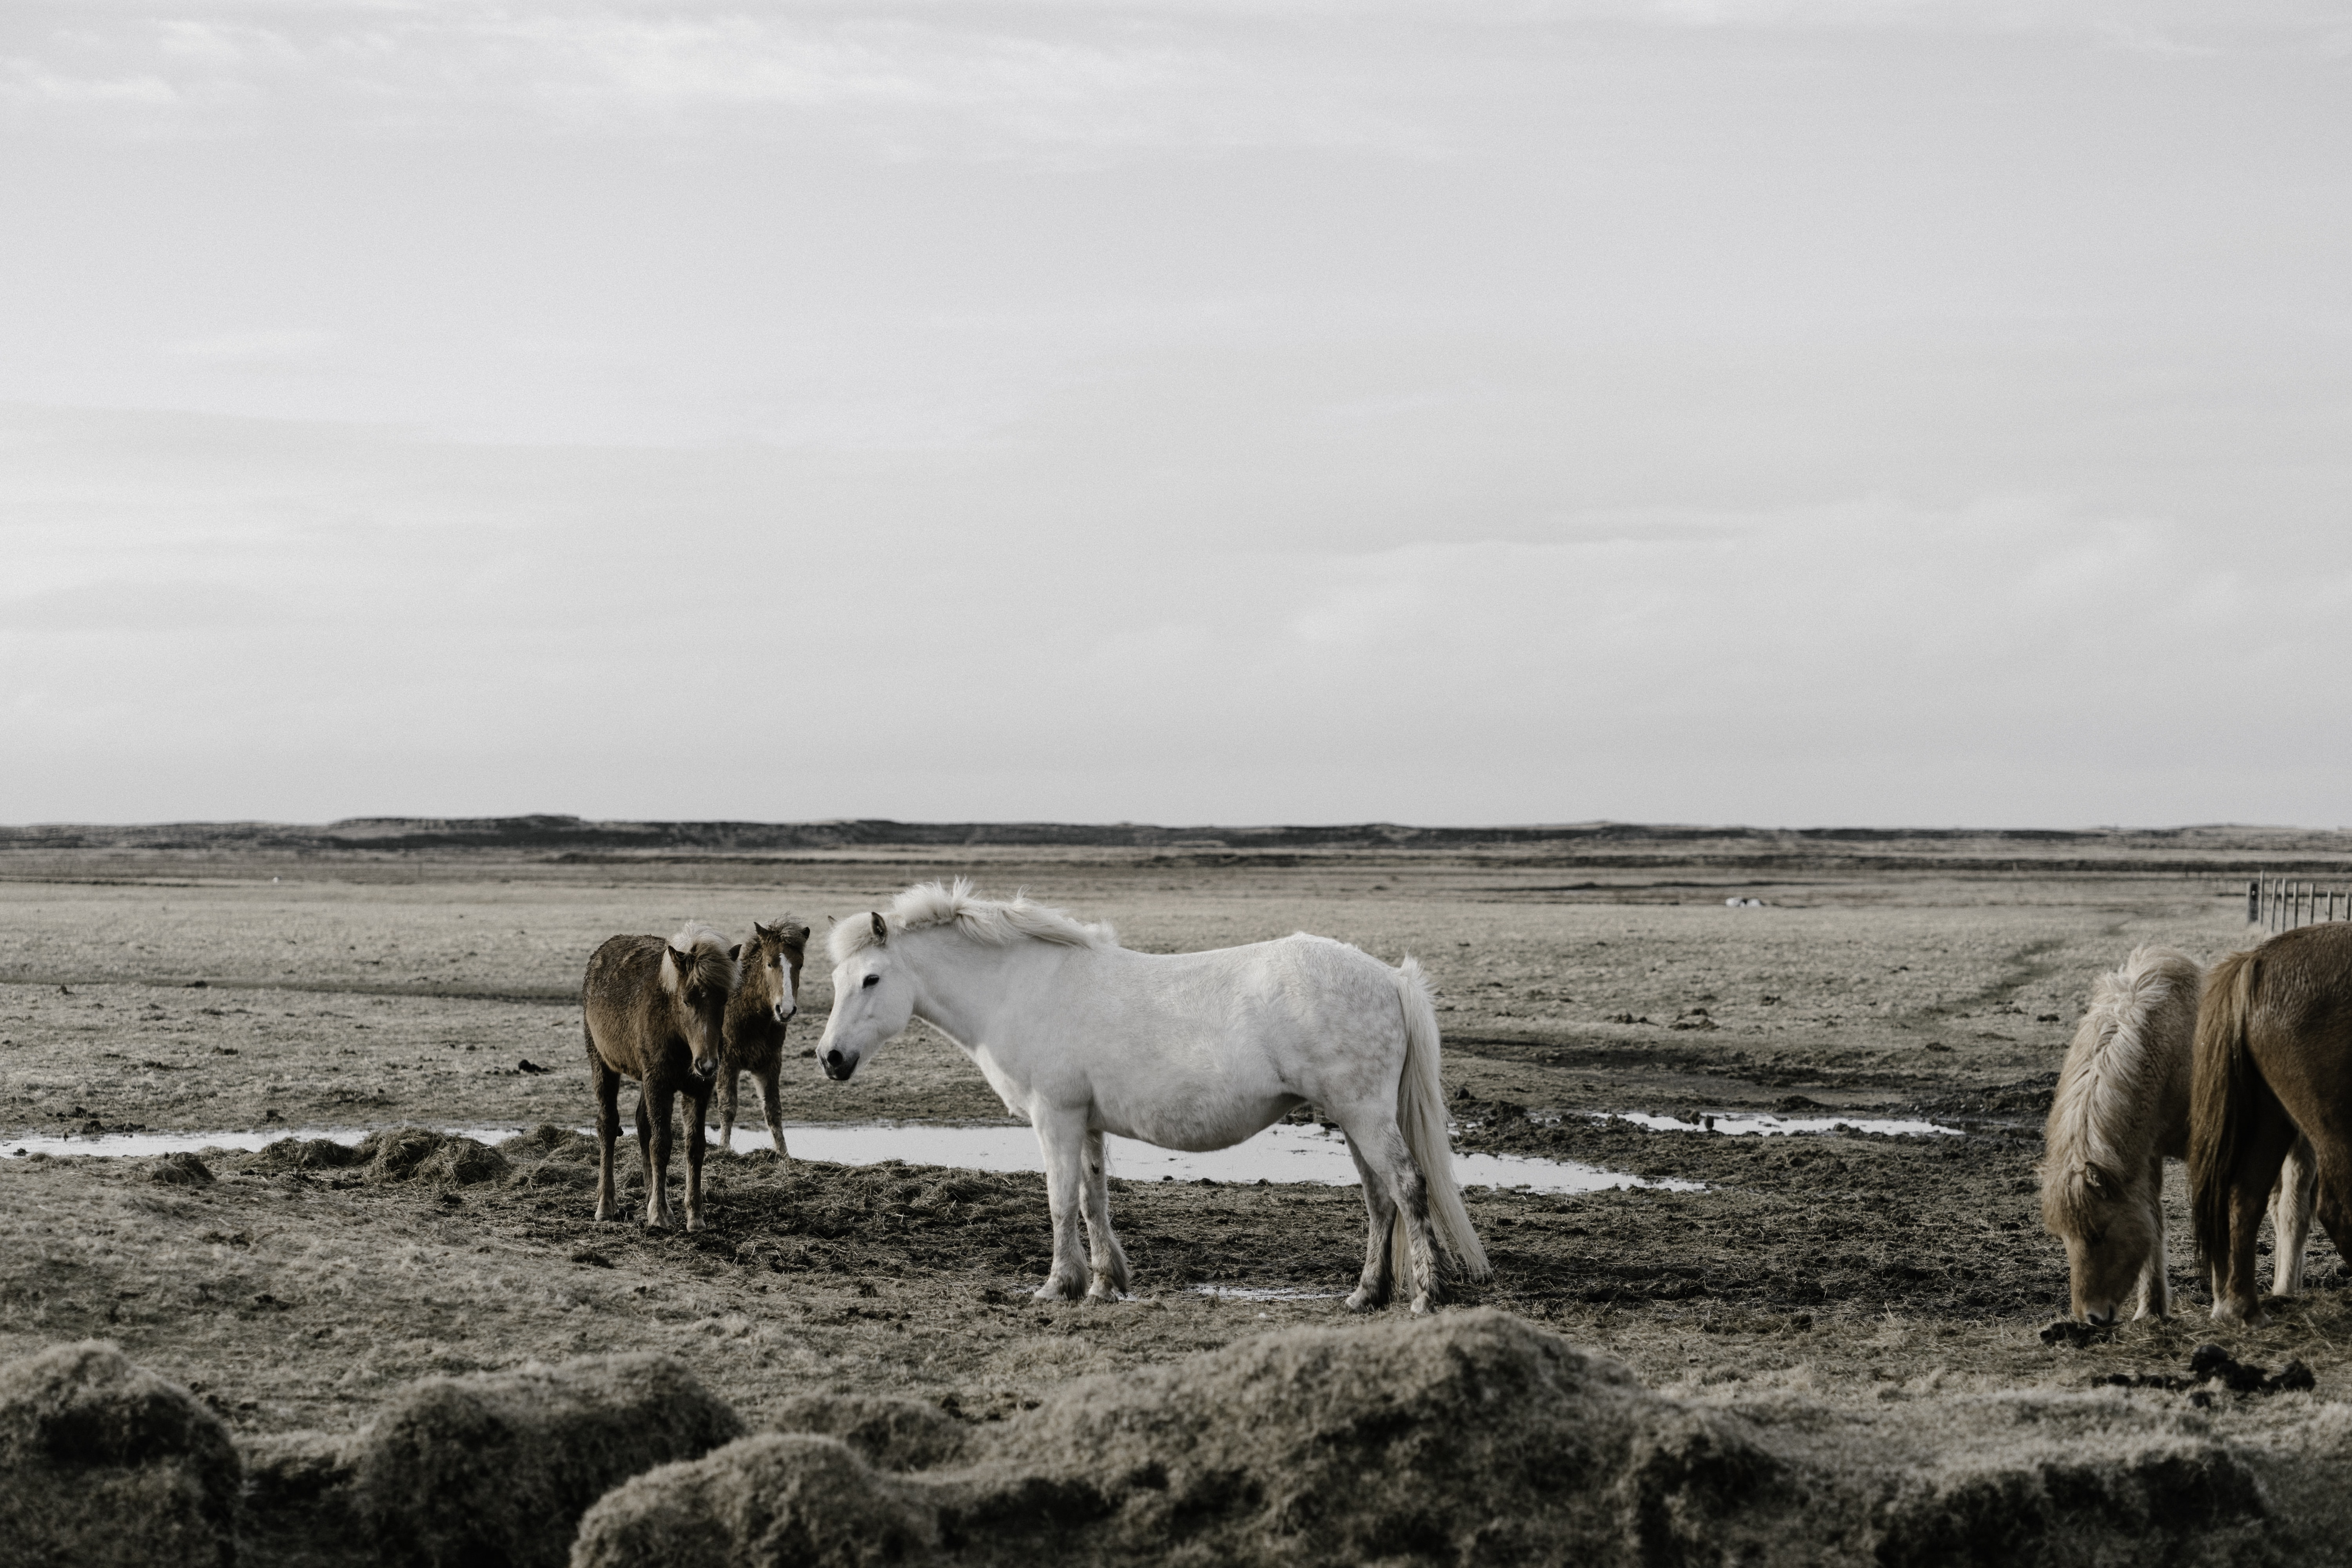 A group of ponies on a muddy plain under thick clouds